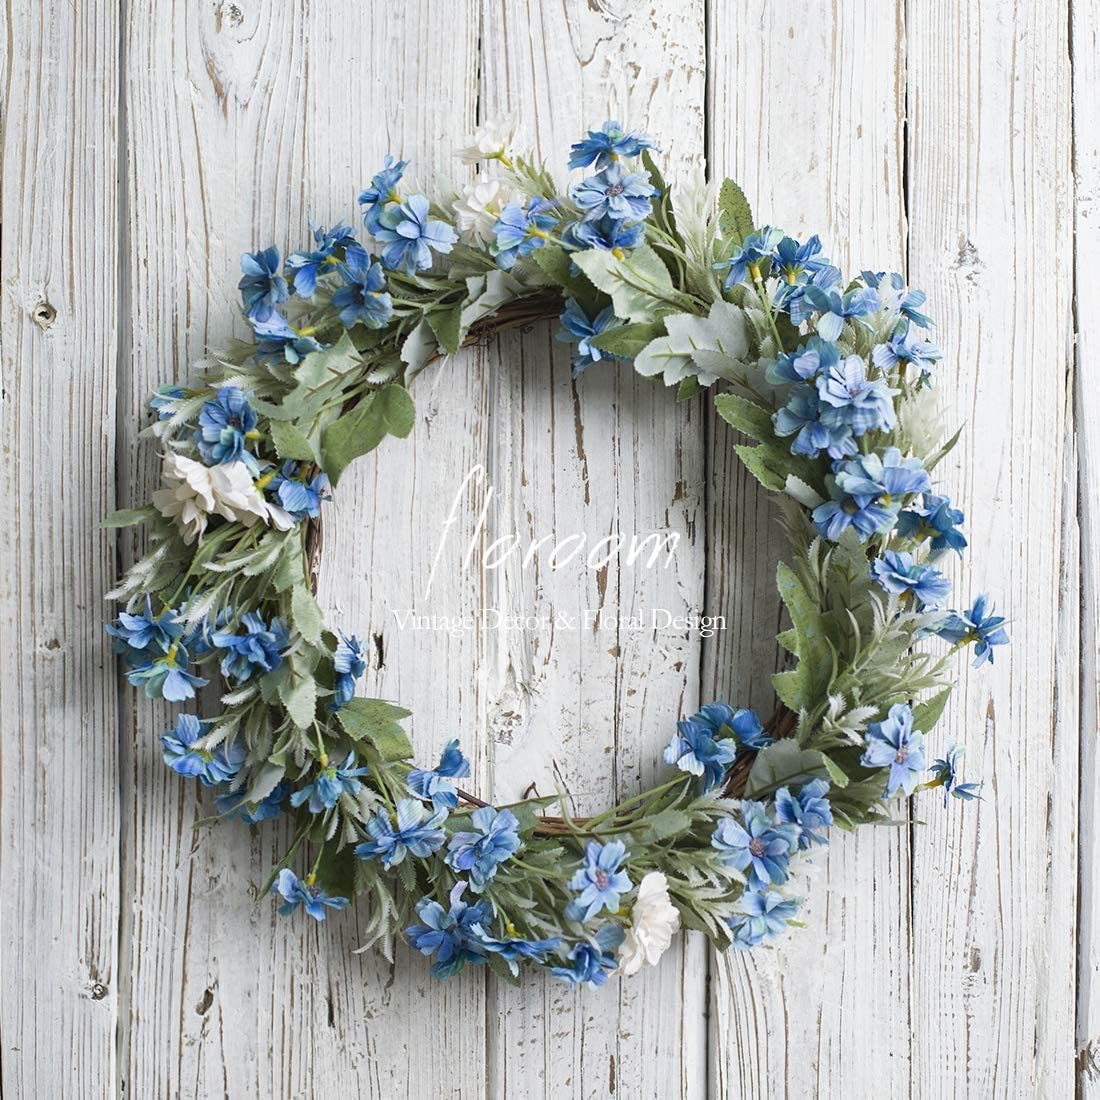 Floral Wreath, Door Wreath, Artificial Blue Wreath for Front Door 15'', Front Door Decorations Wall Decor